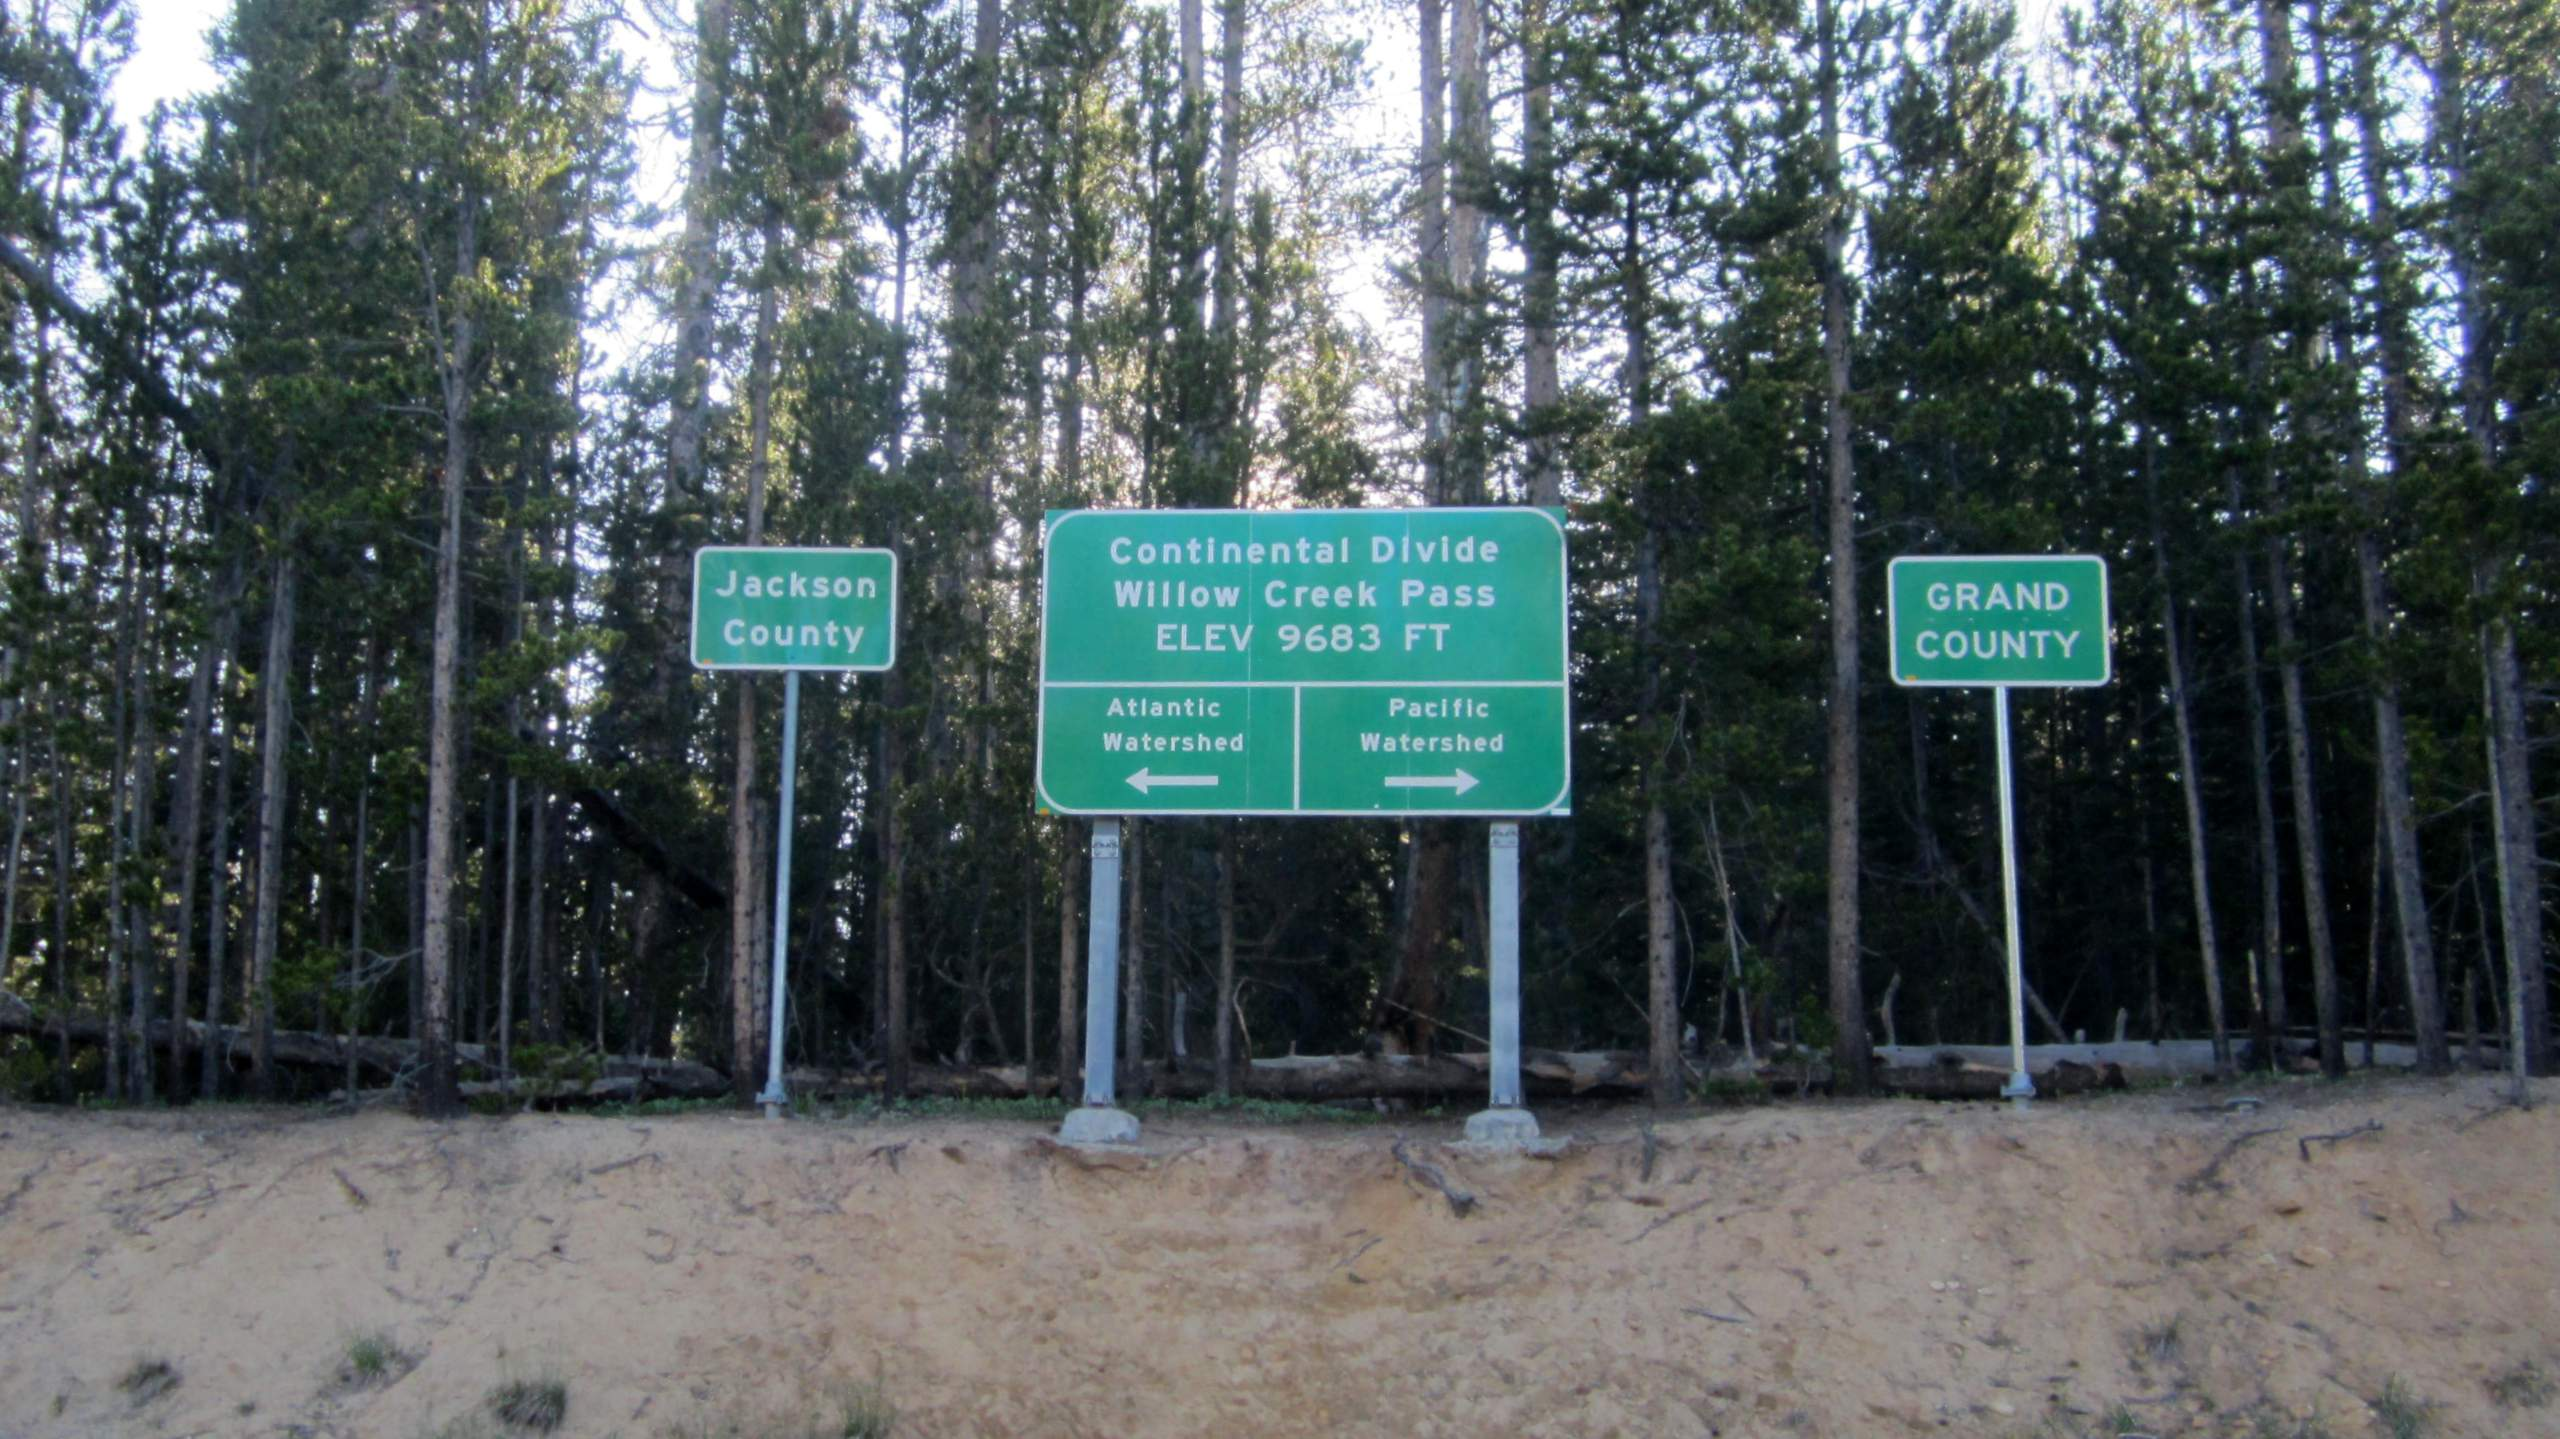 green road signs, Continental Divide, Willow Creek Pass